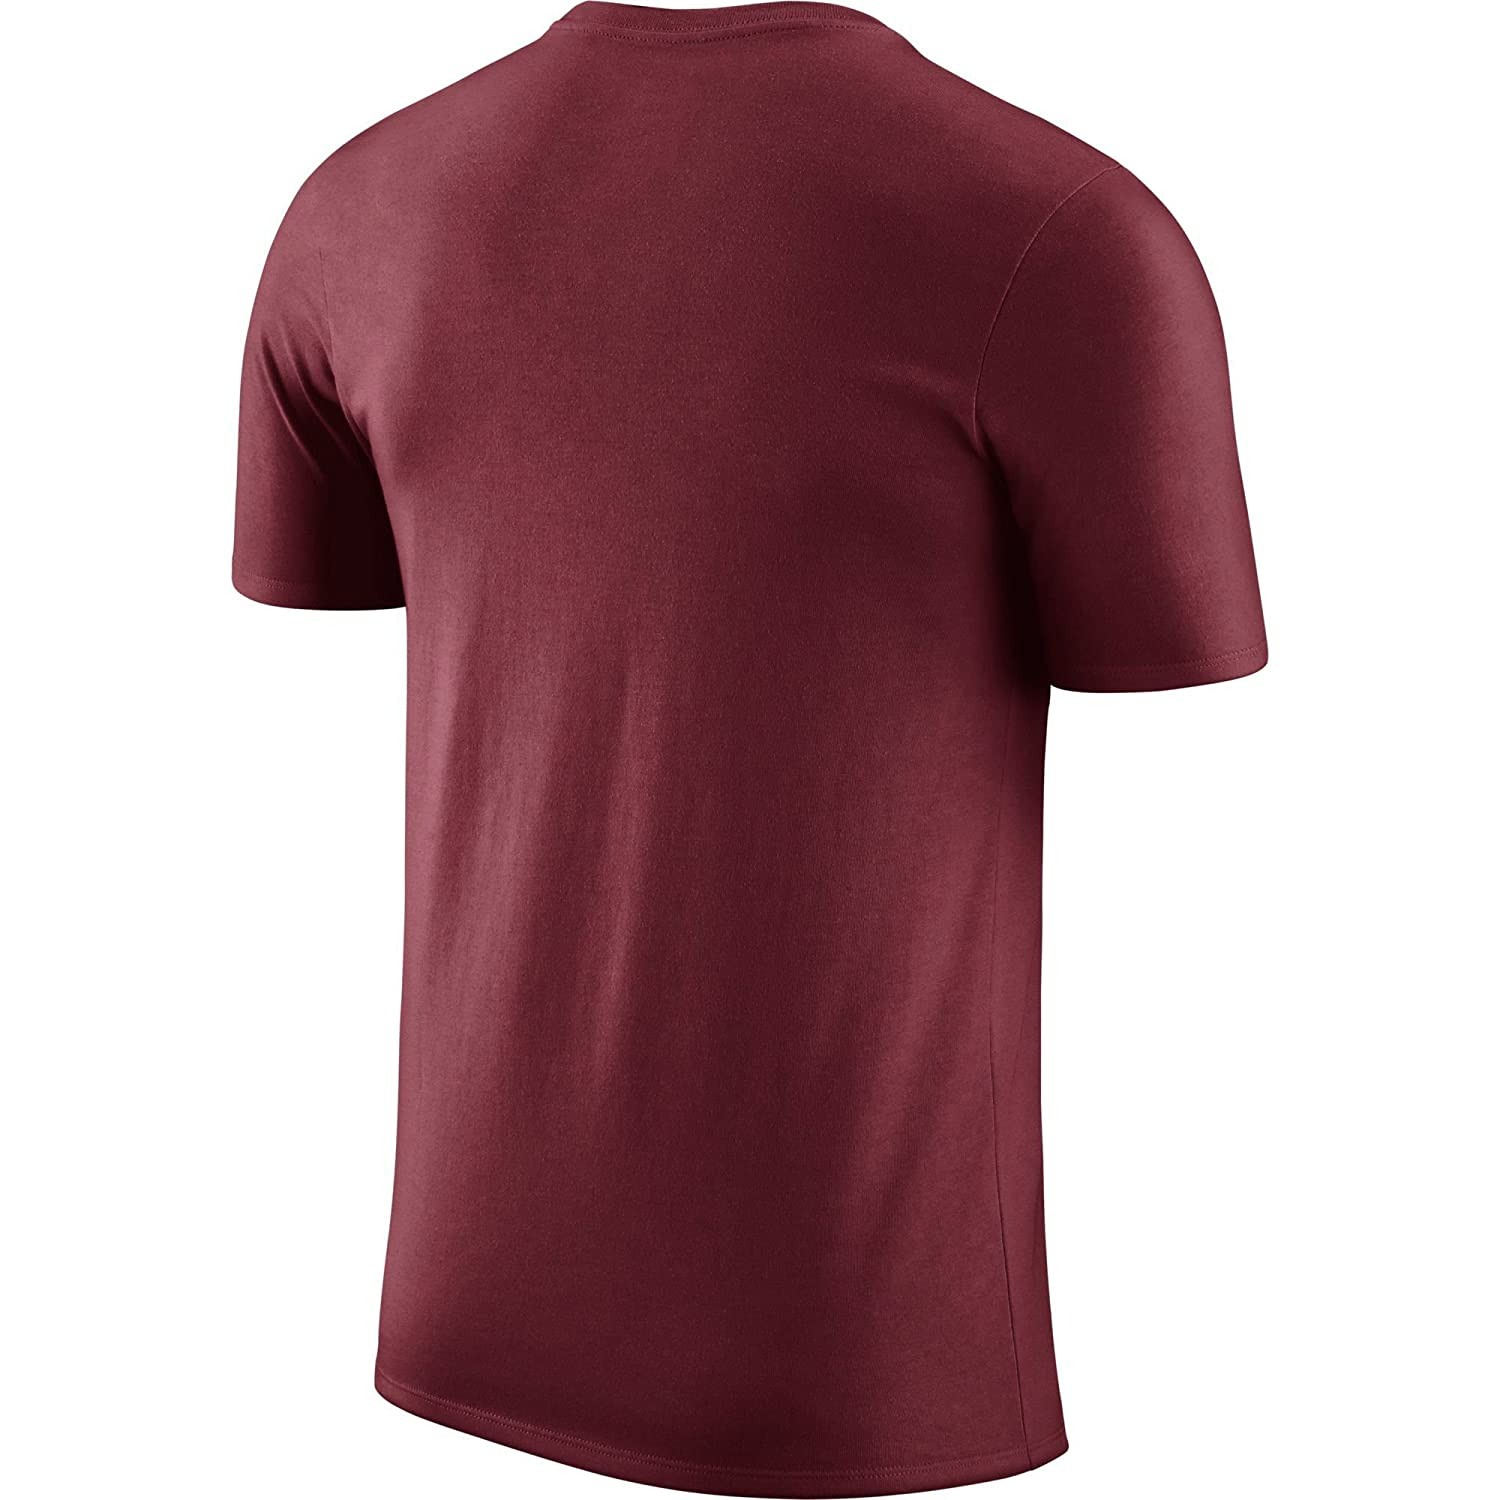 a1c0717cd55 Amazon.com   NIKE Cleveland Cavaliers Practice Performance T-Shirt Wine  (XL)   Sports   Outdoors